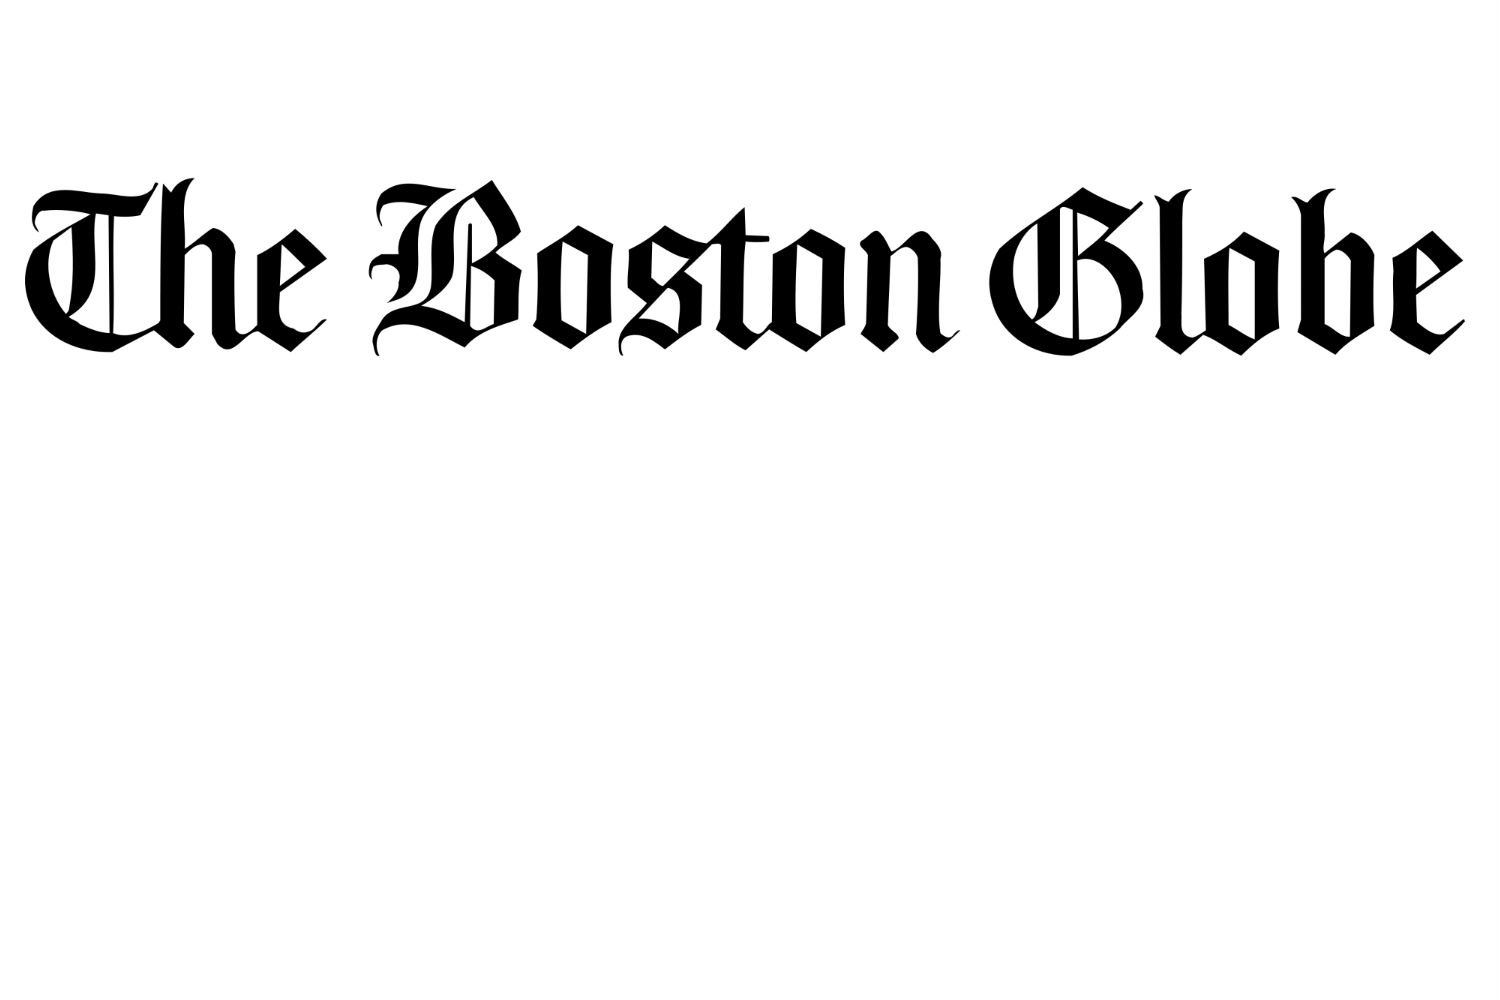 BostonGlobeLogo - for republished or linked article use